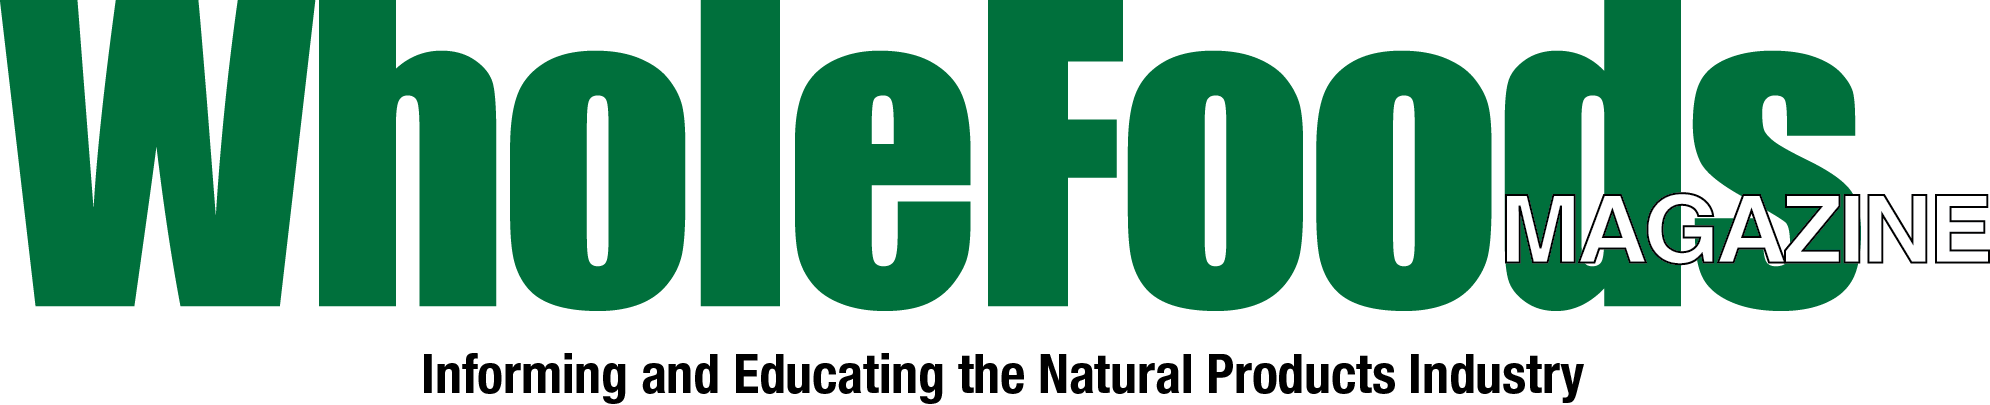 Whole food logo png. Nutritional articles natural health